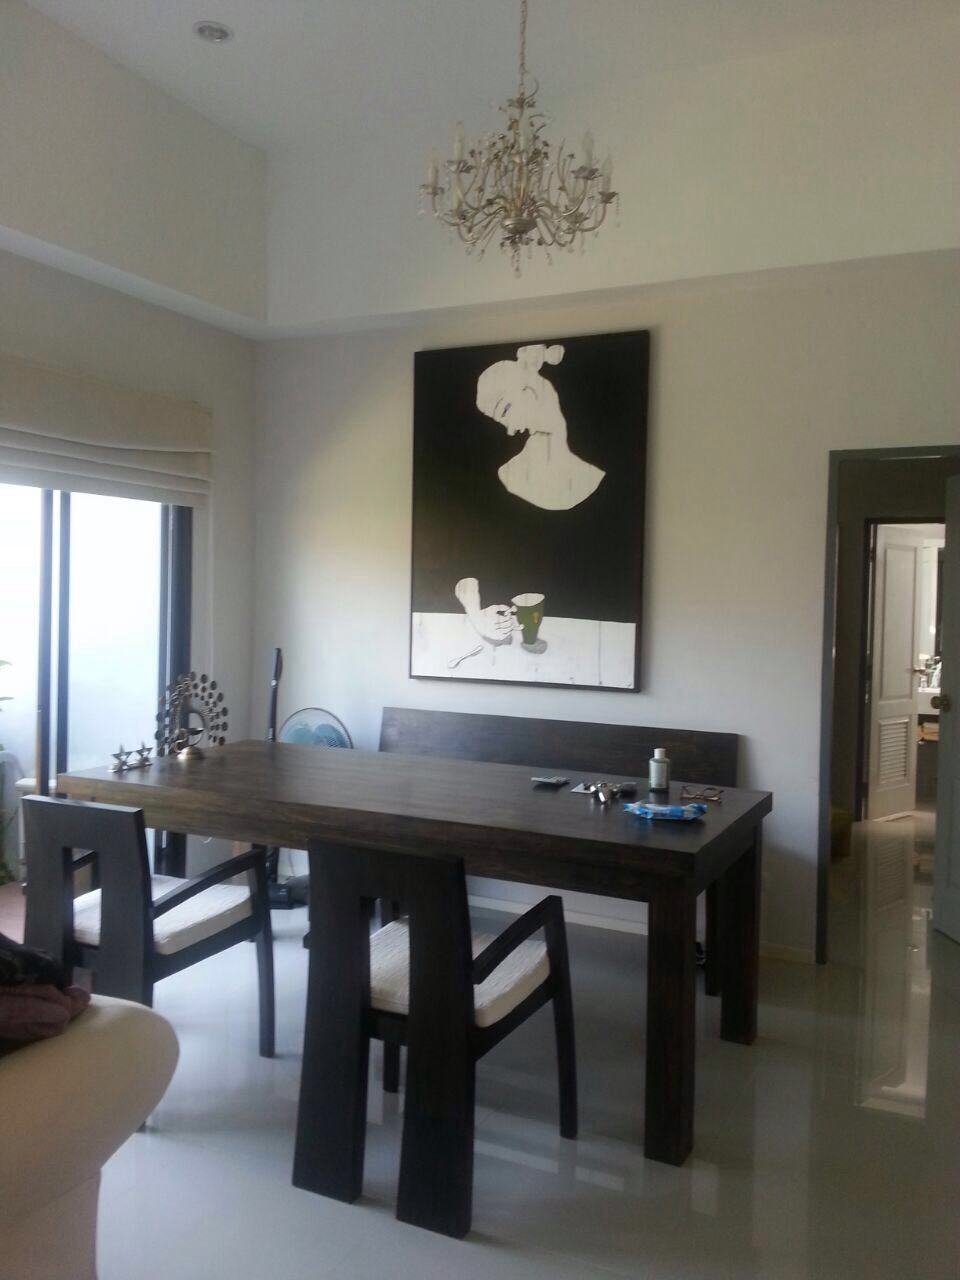 3 Bdr Townhouse for Sale - Loch Palm Golf Course